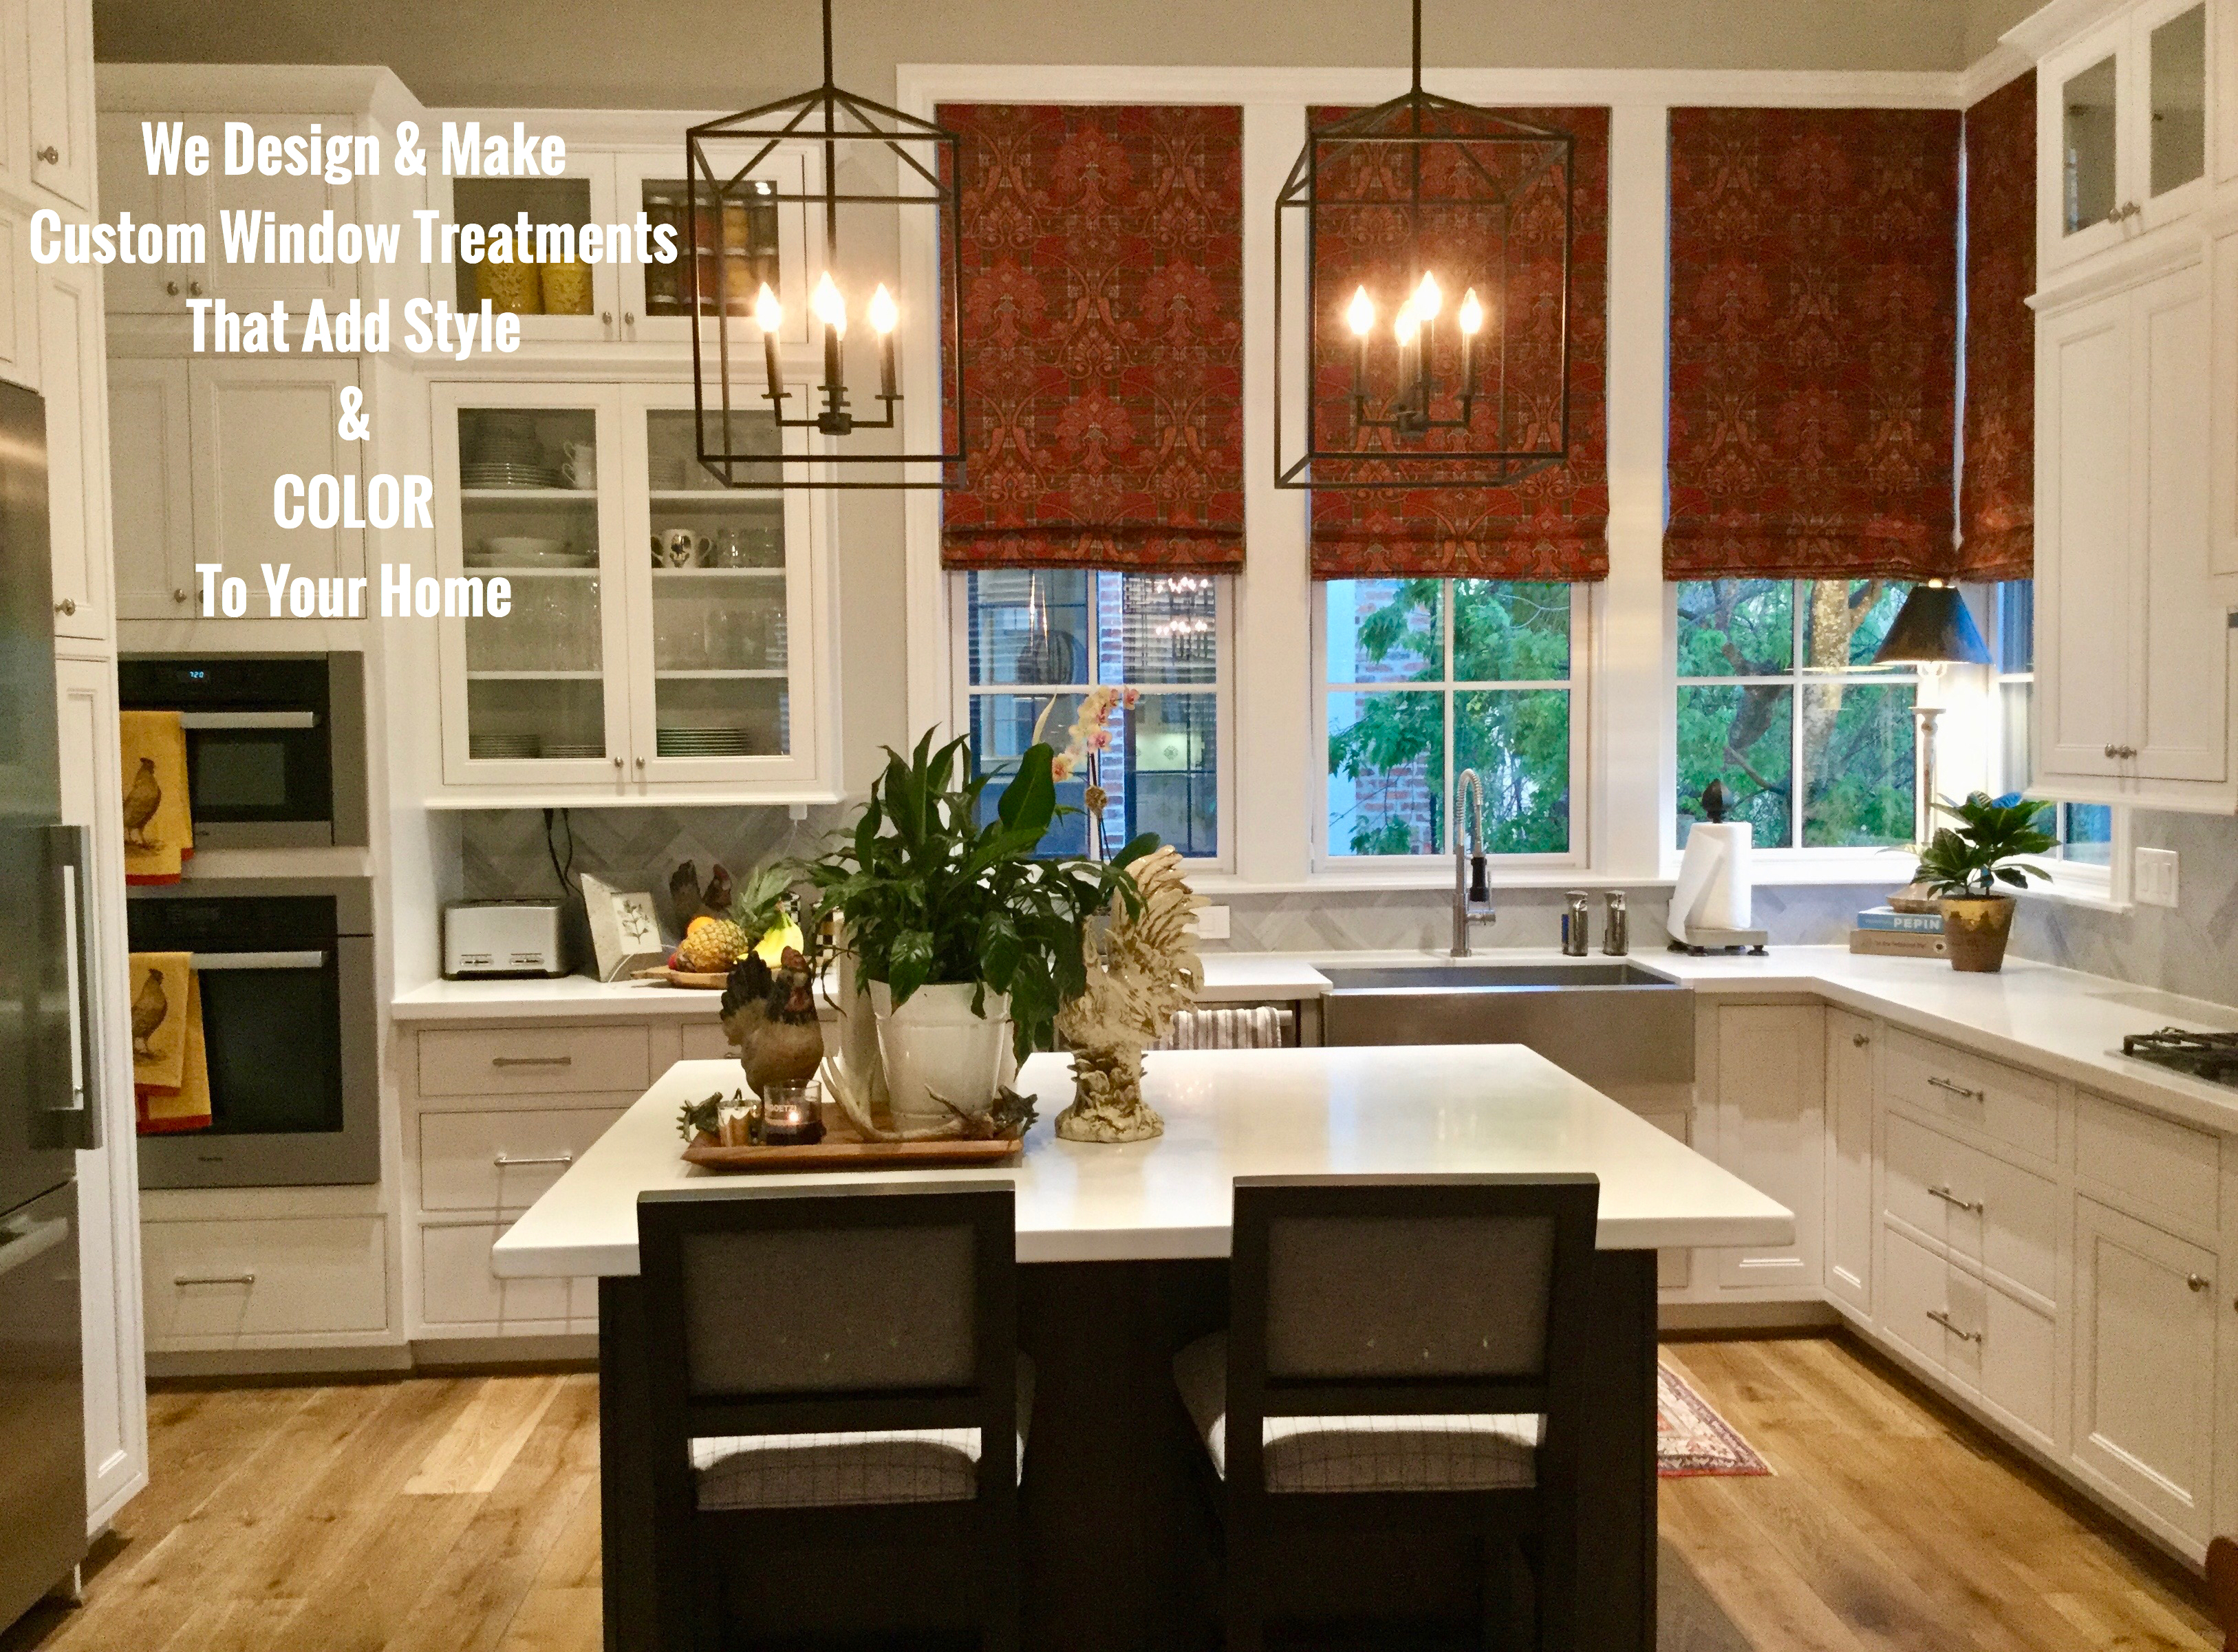 Edith Barrera Interiors White Kitchen Gets Beautiful Warm Color Pop Designed Made By Edith Barrera Interiors Llc